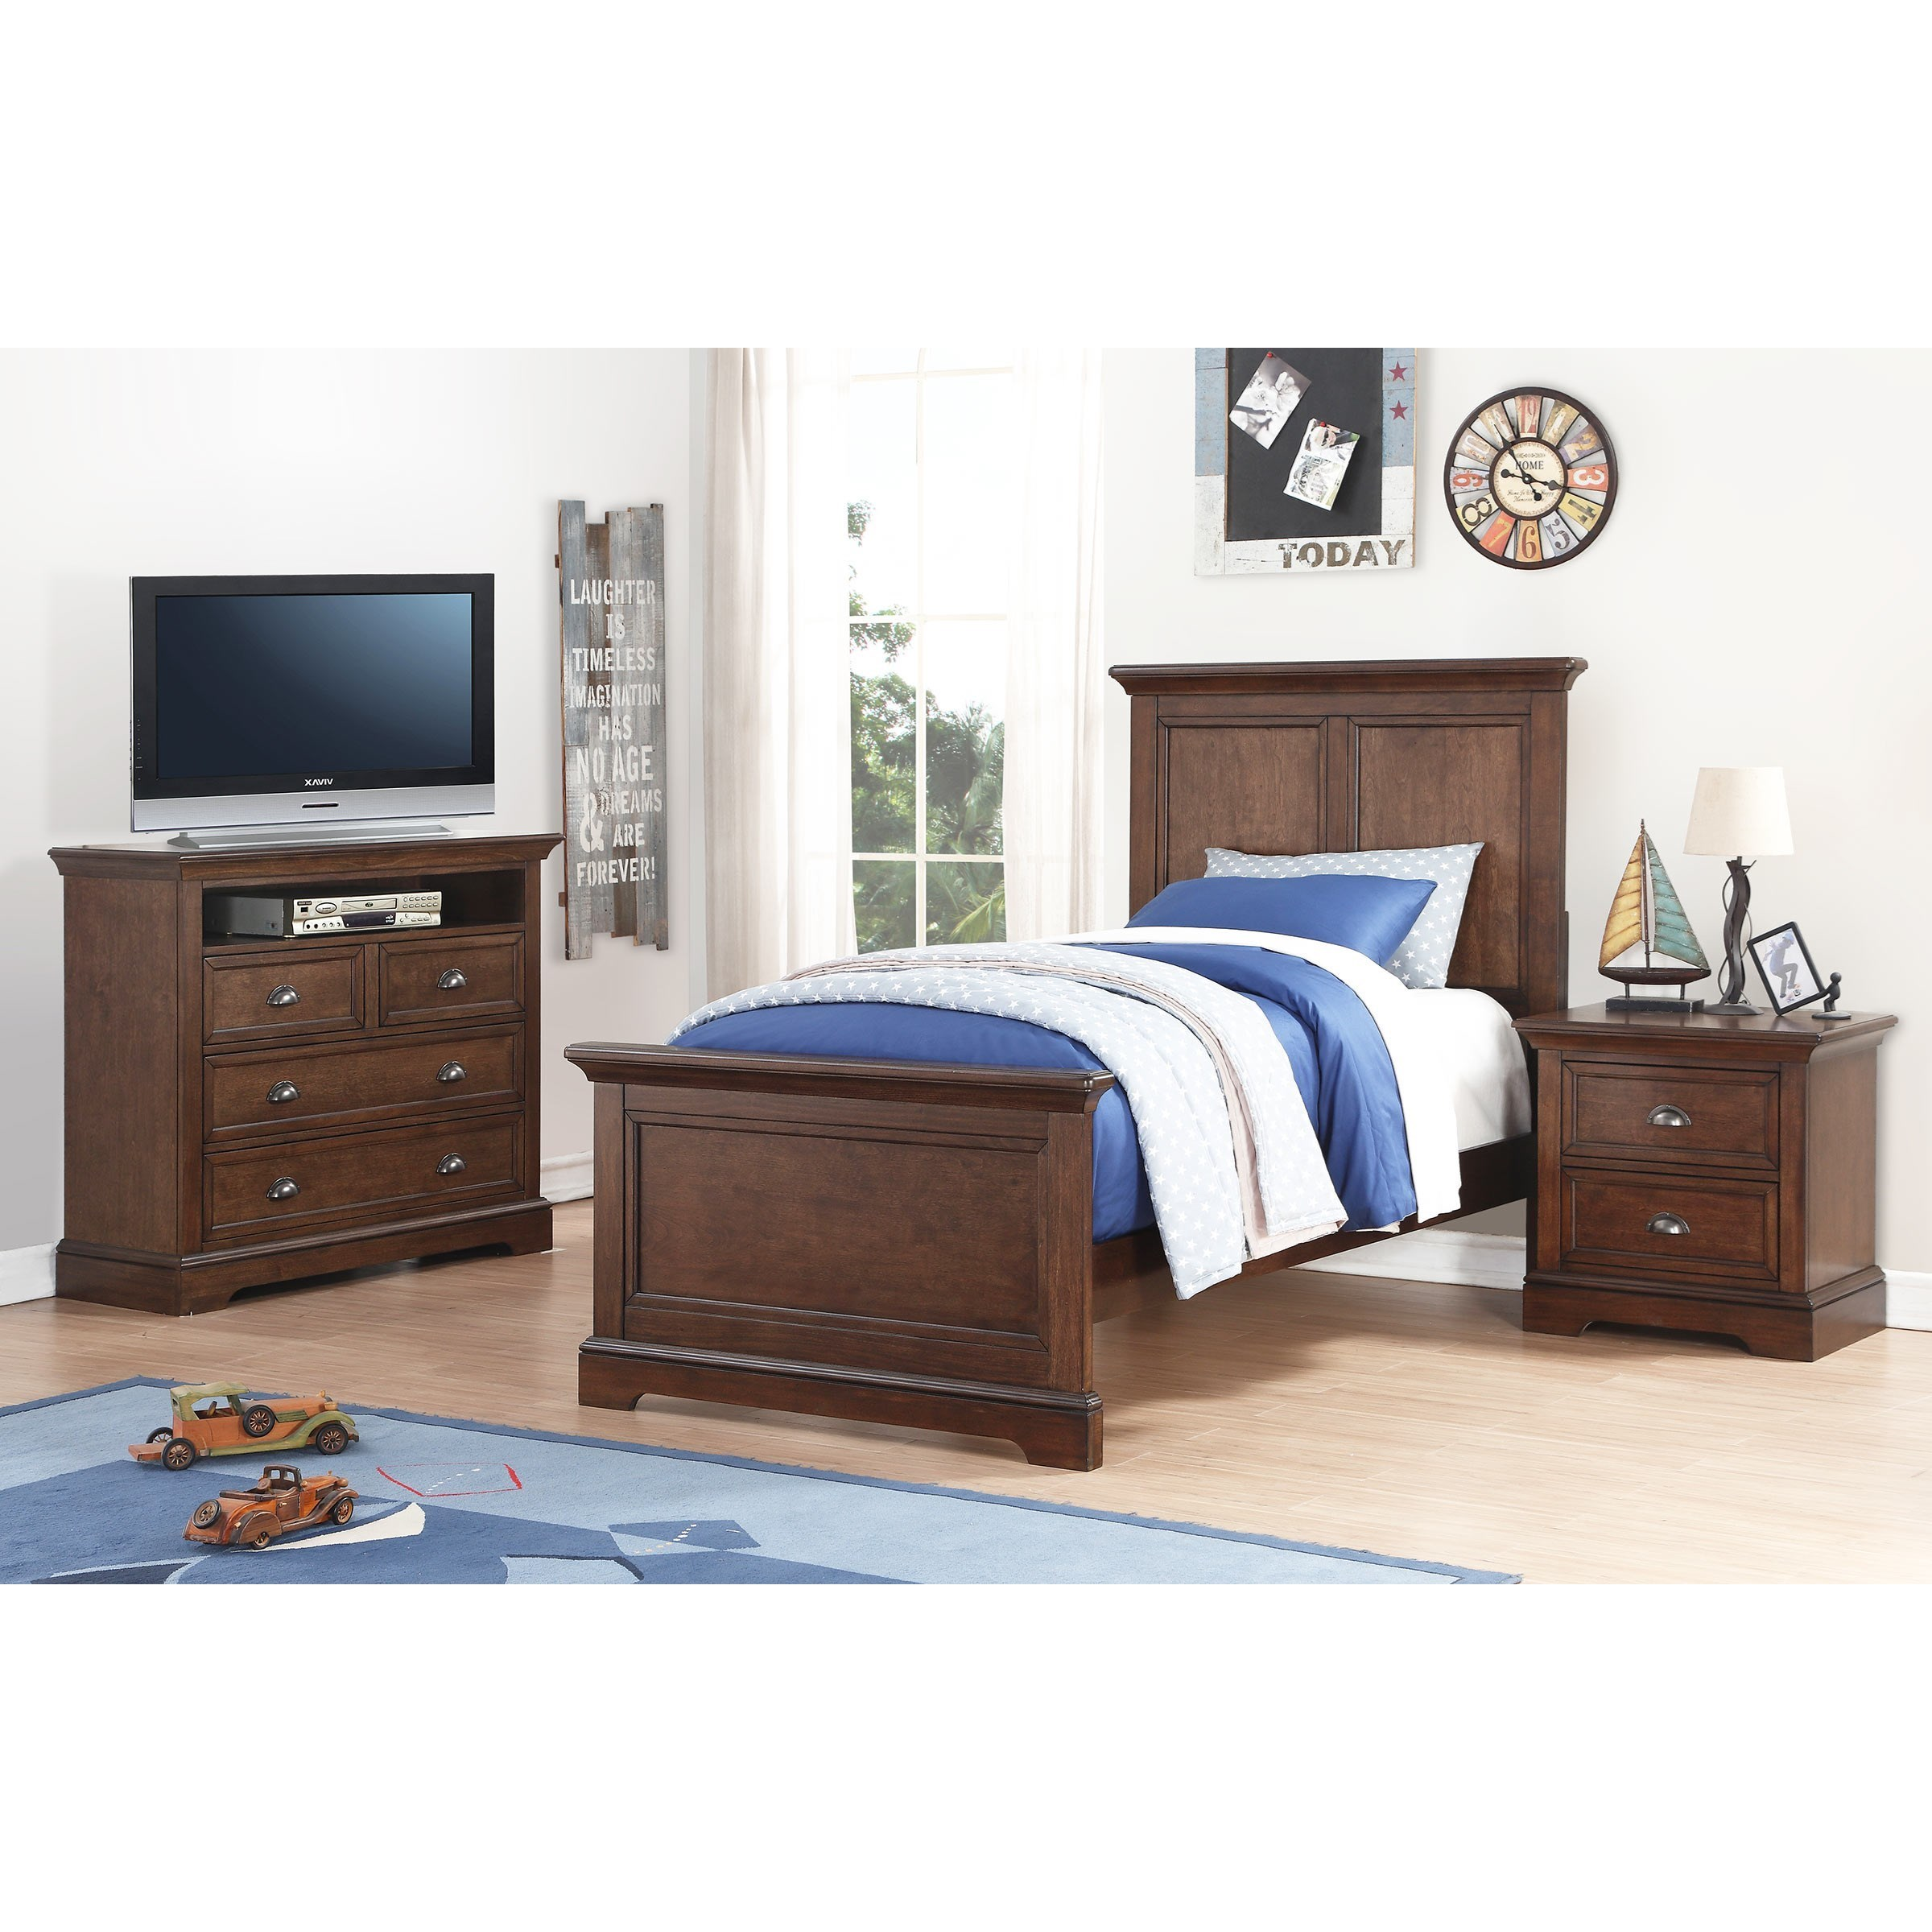 Tamarack Twin Bedroom Group by Winners Only at Crowley Furniture & Mattress